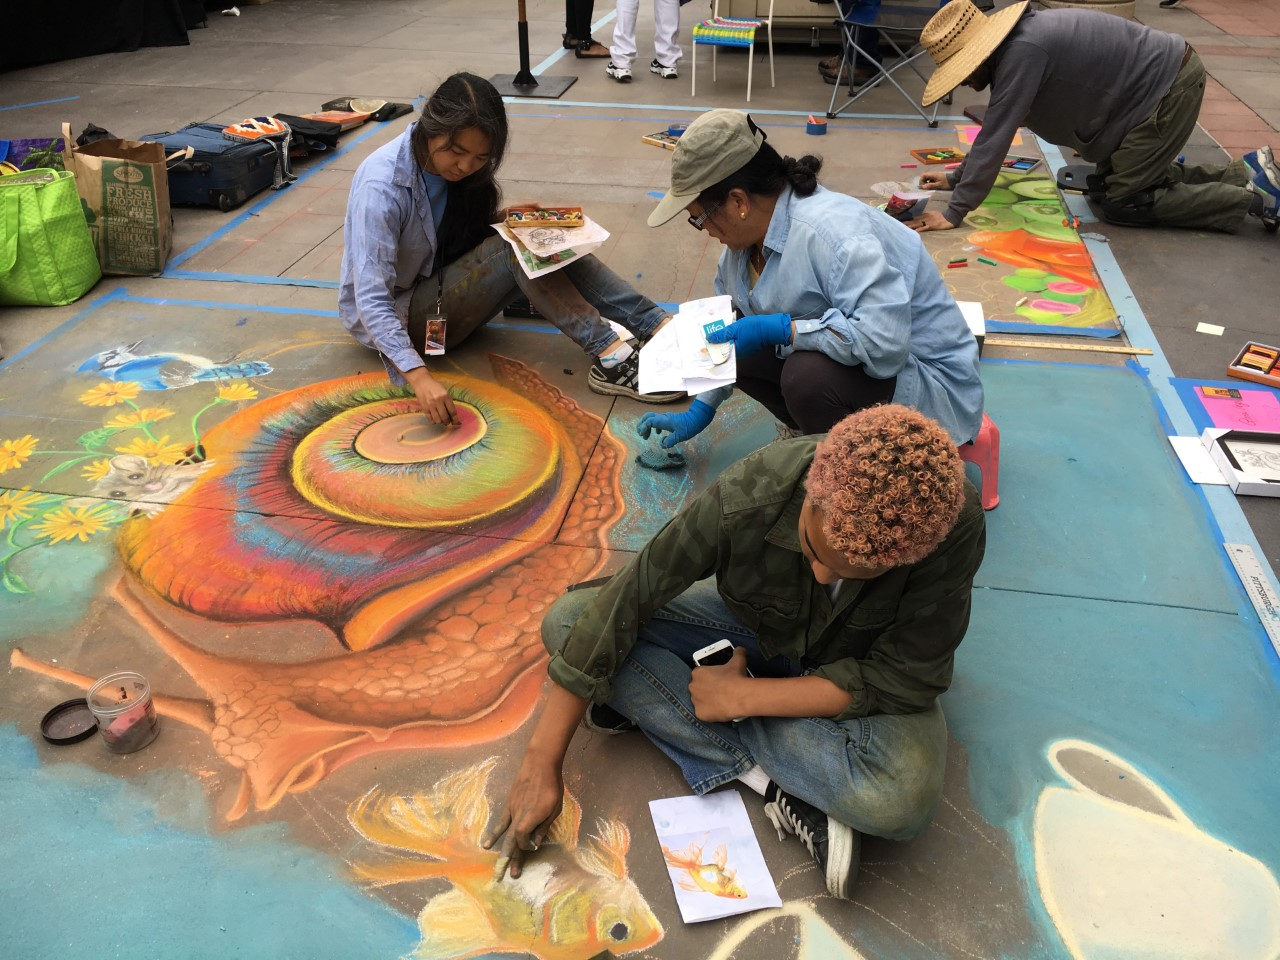 Pasadena Chalk Festival June 15-16